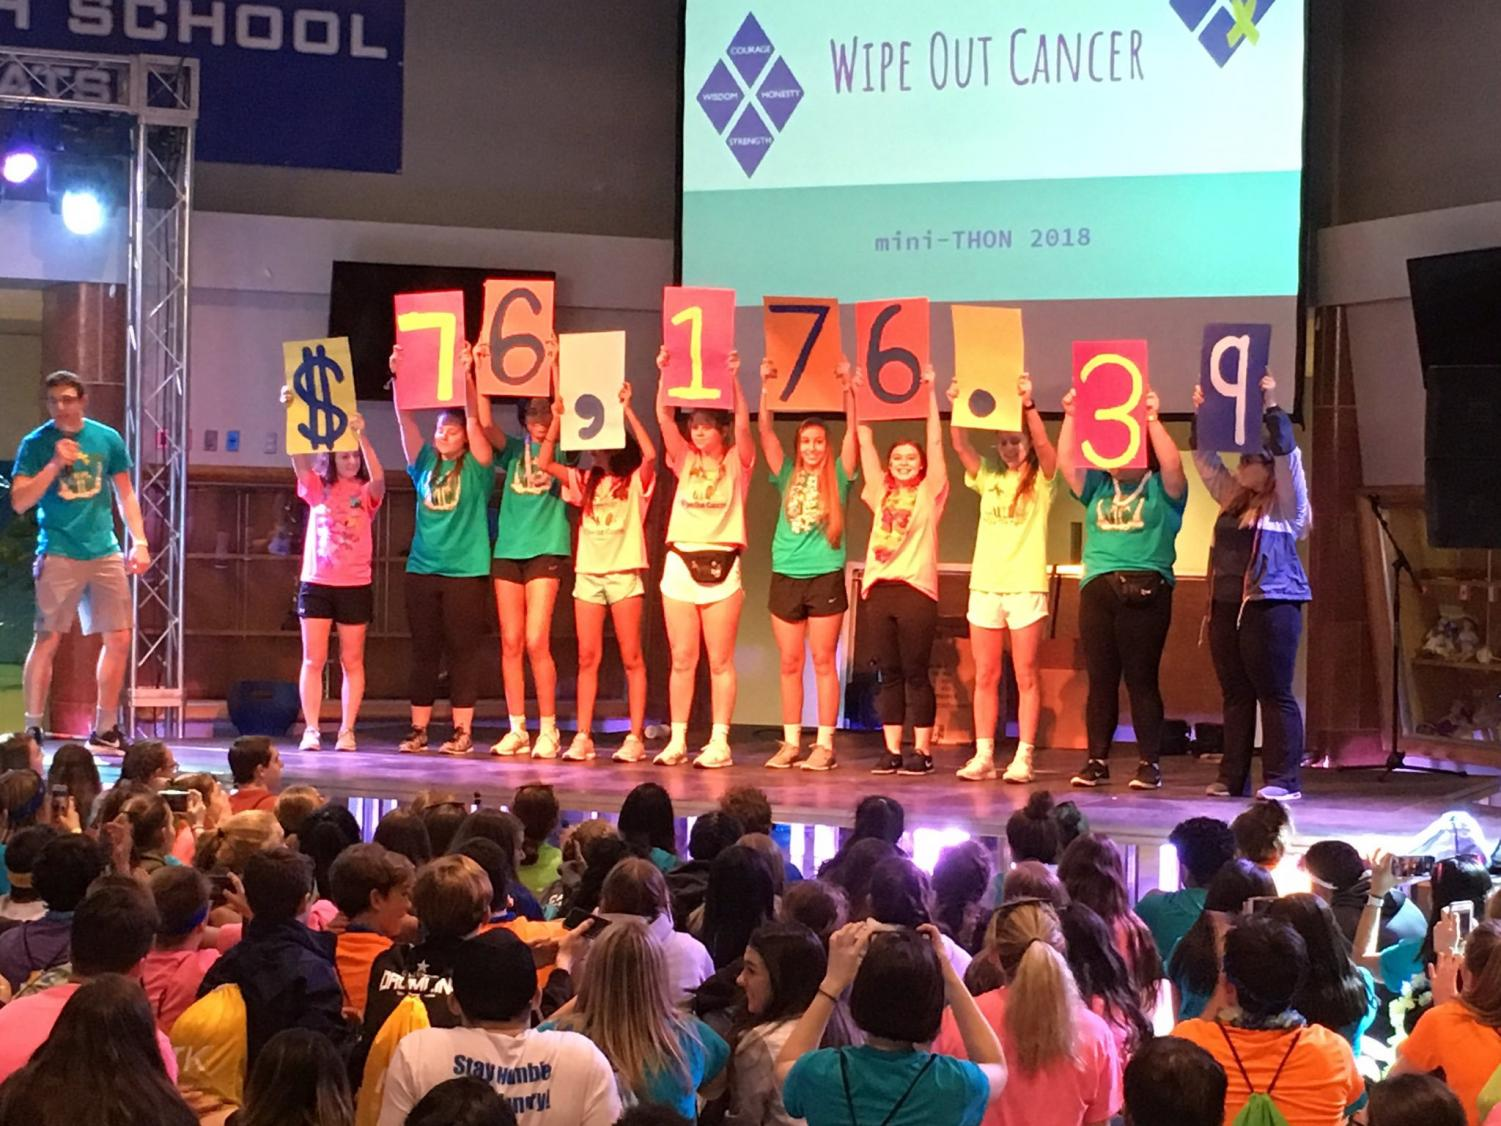 After 12 hours of activities, food, fun, and of course, standing, the committee chairs reveal the total amount raised FTK. This year, mini-THON hopes to raise at least $75,000 for the Four Diamonds Foundation. Fundraisers are held throughout the year in addition to the participants individual fundraising to help reach the goal. Photo submitted